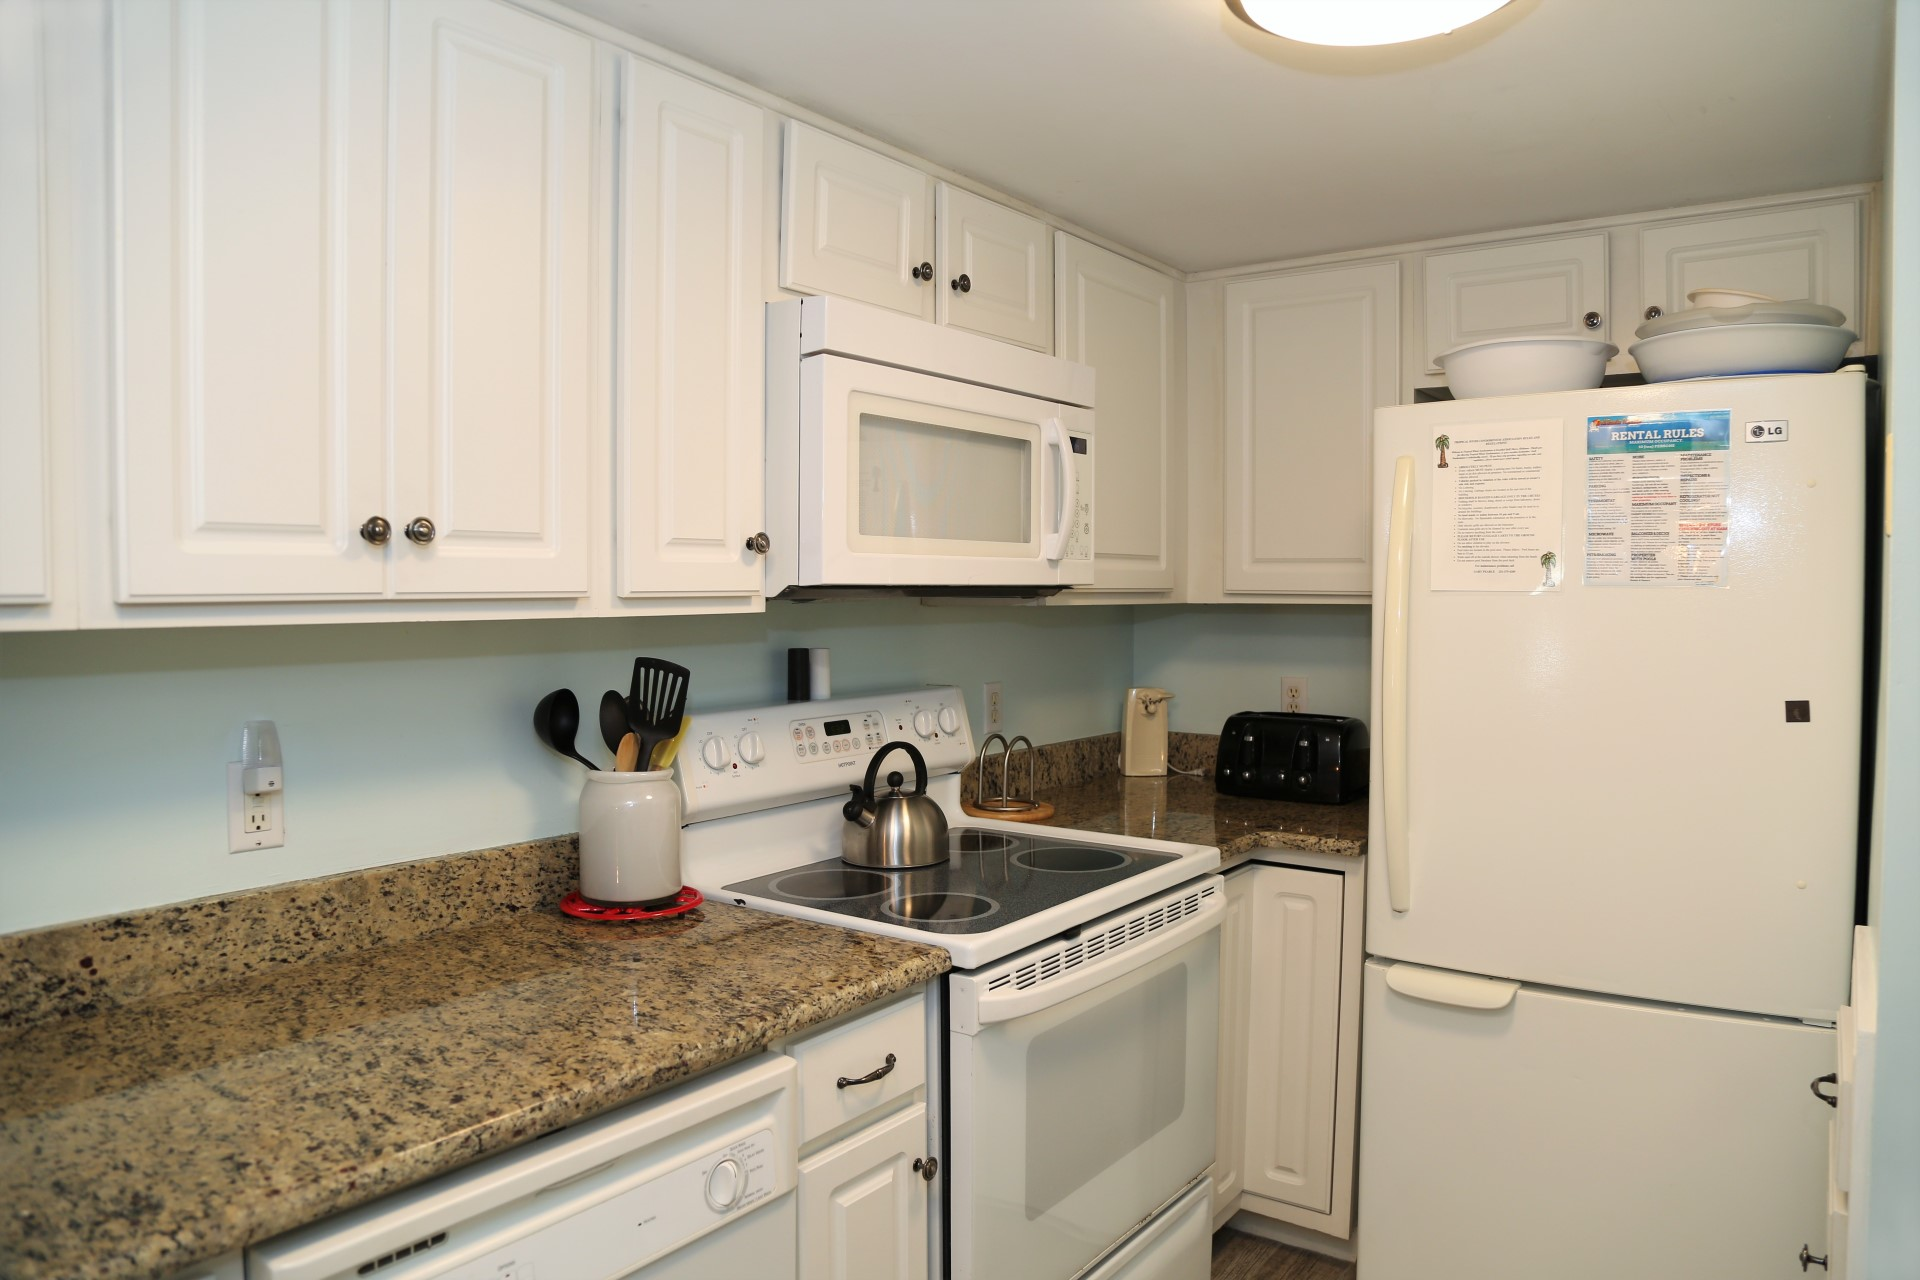 Tropical Winds 304 - Fully Equipped Kitchen